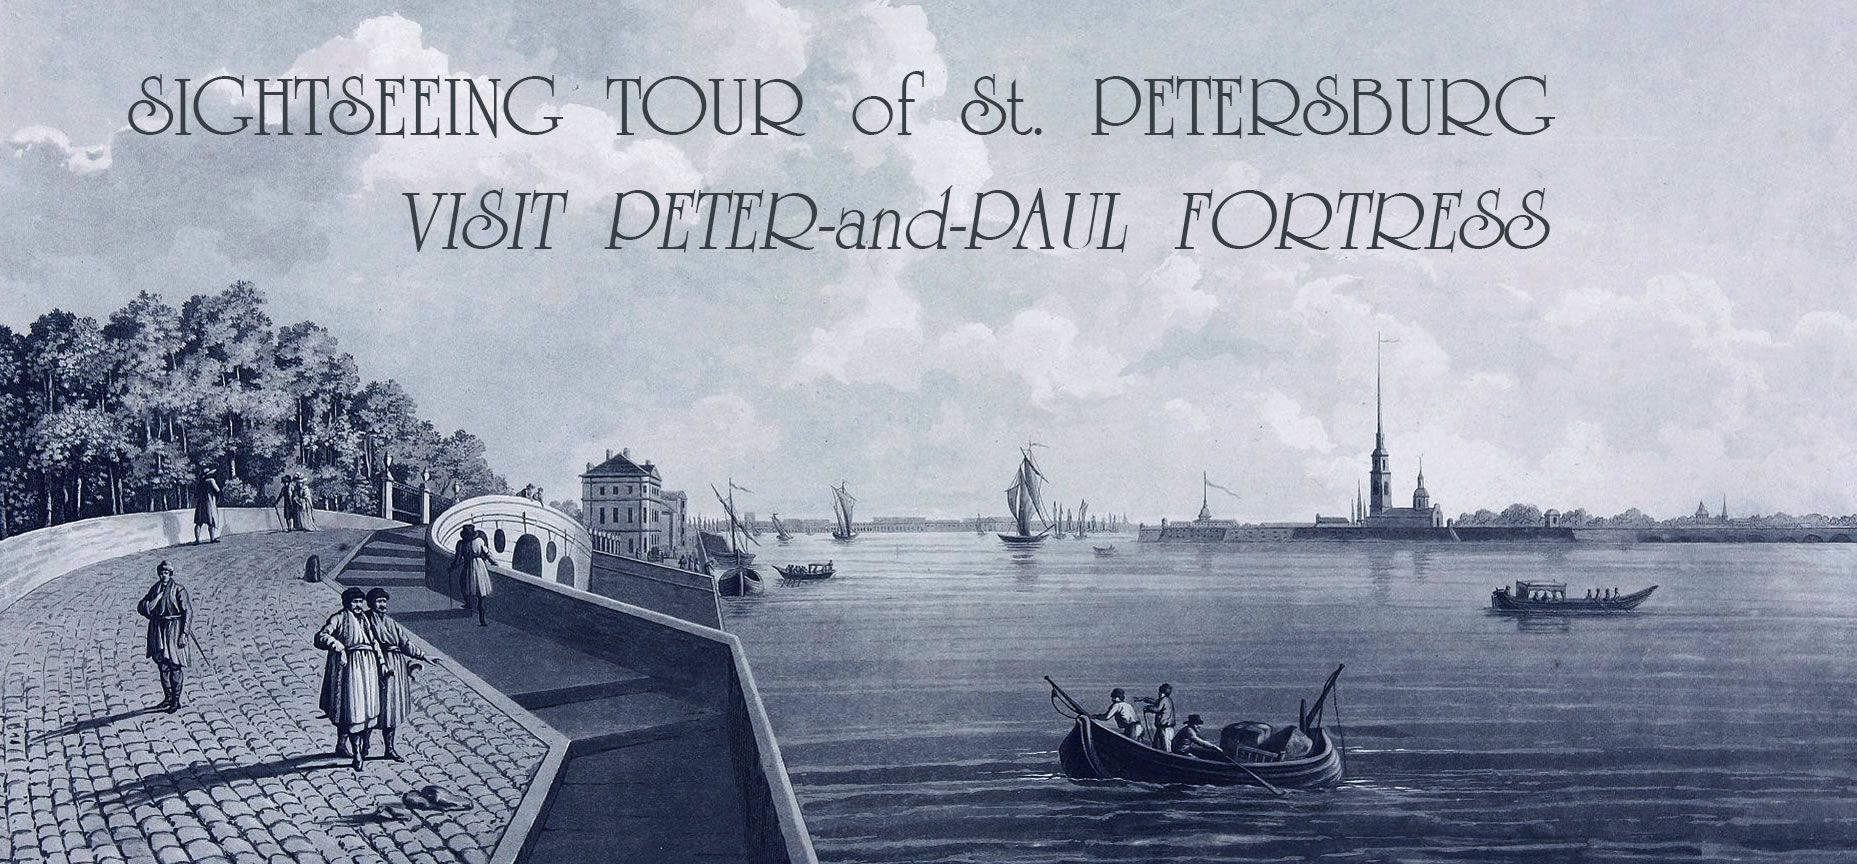 Visit Peter and Paul Fortress